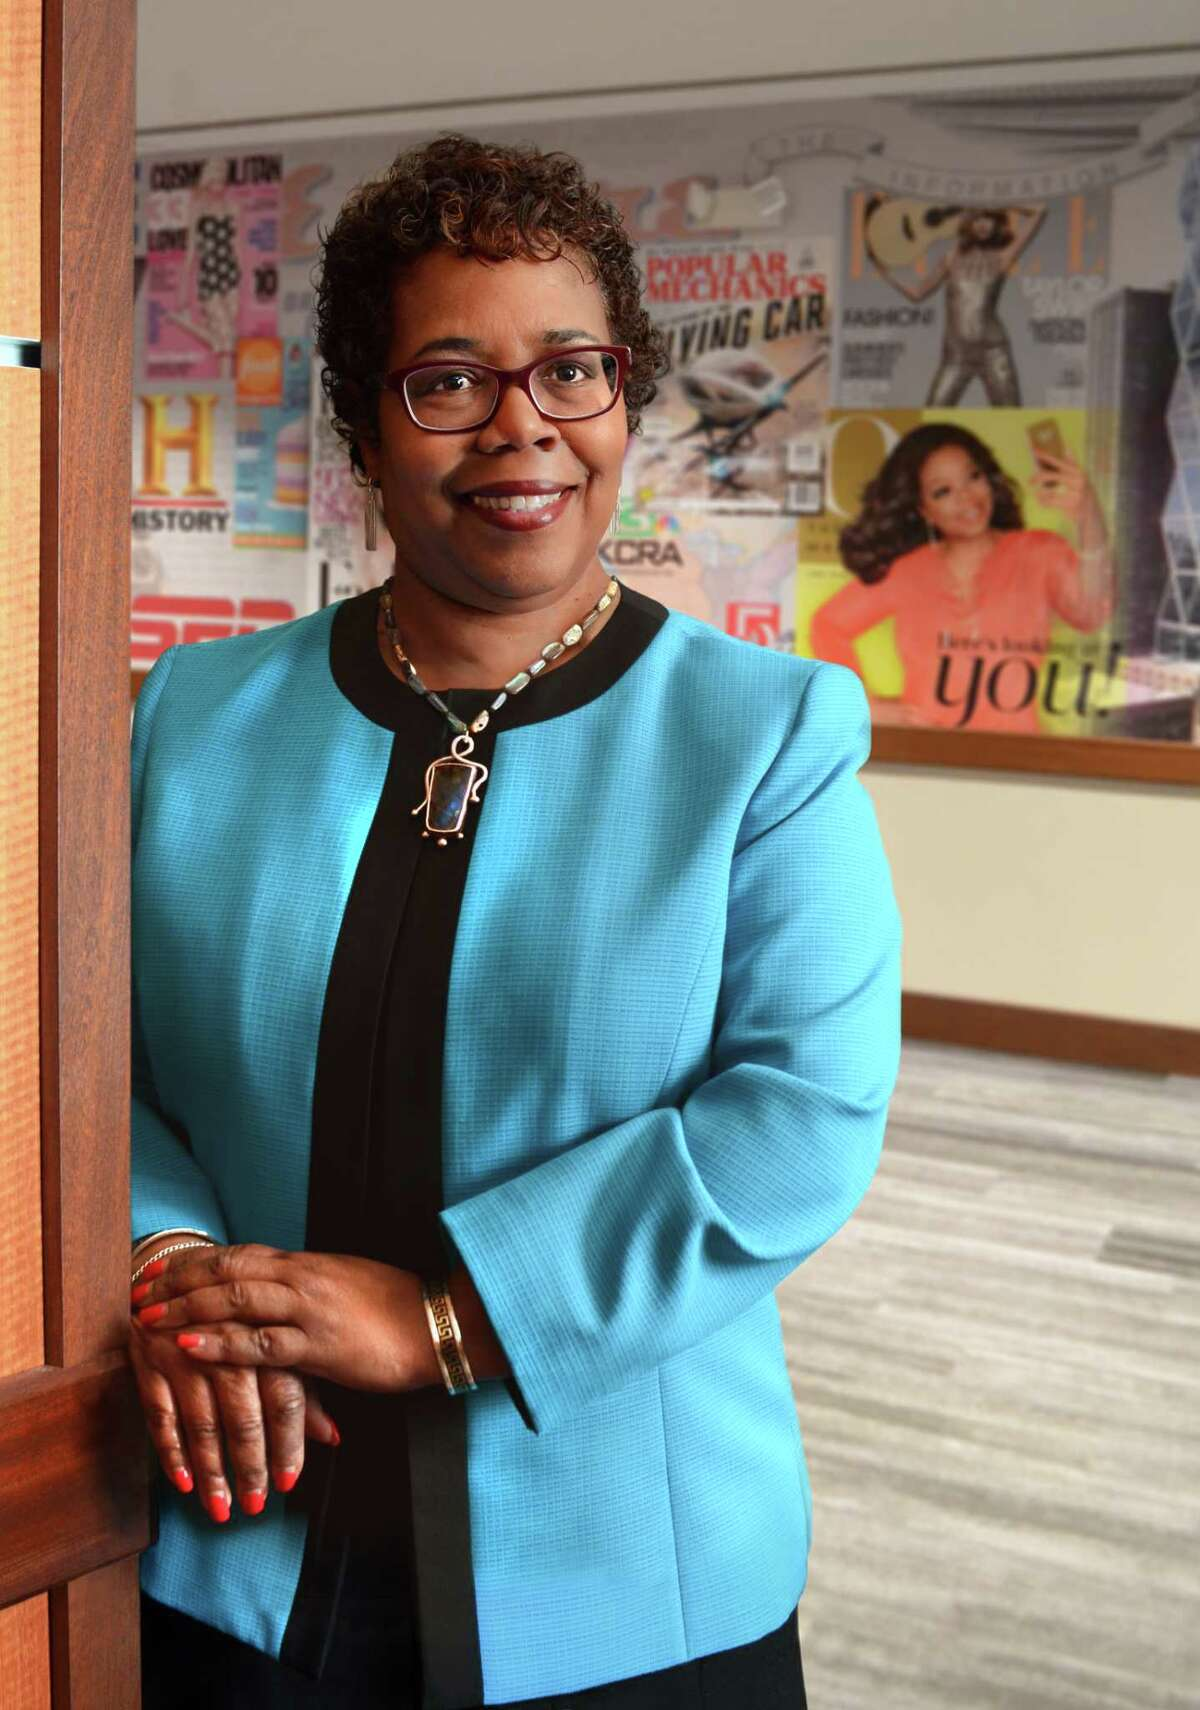 Gretchel Hathaway, Dean of Diversity and Inclusion, Chief Diversity Officer at Union College, will leave the school Aug. 3 for a new post at Franklin & Marshall in Lancaster, Pa. (Colleen Ingerto / Times Union)